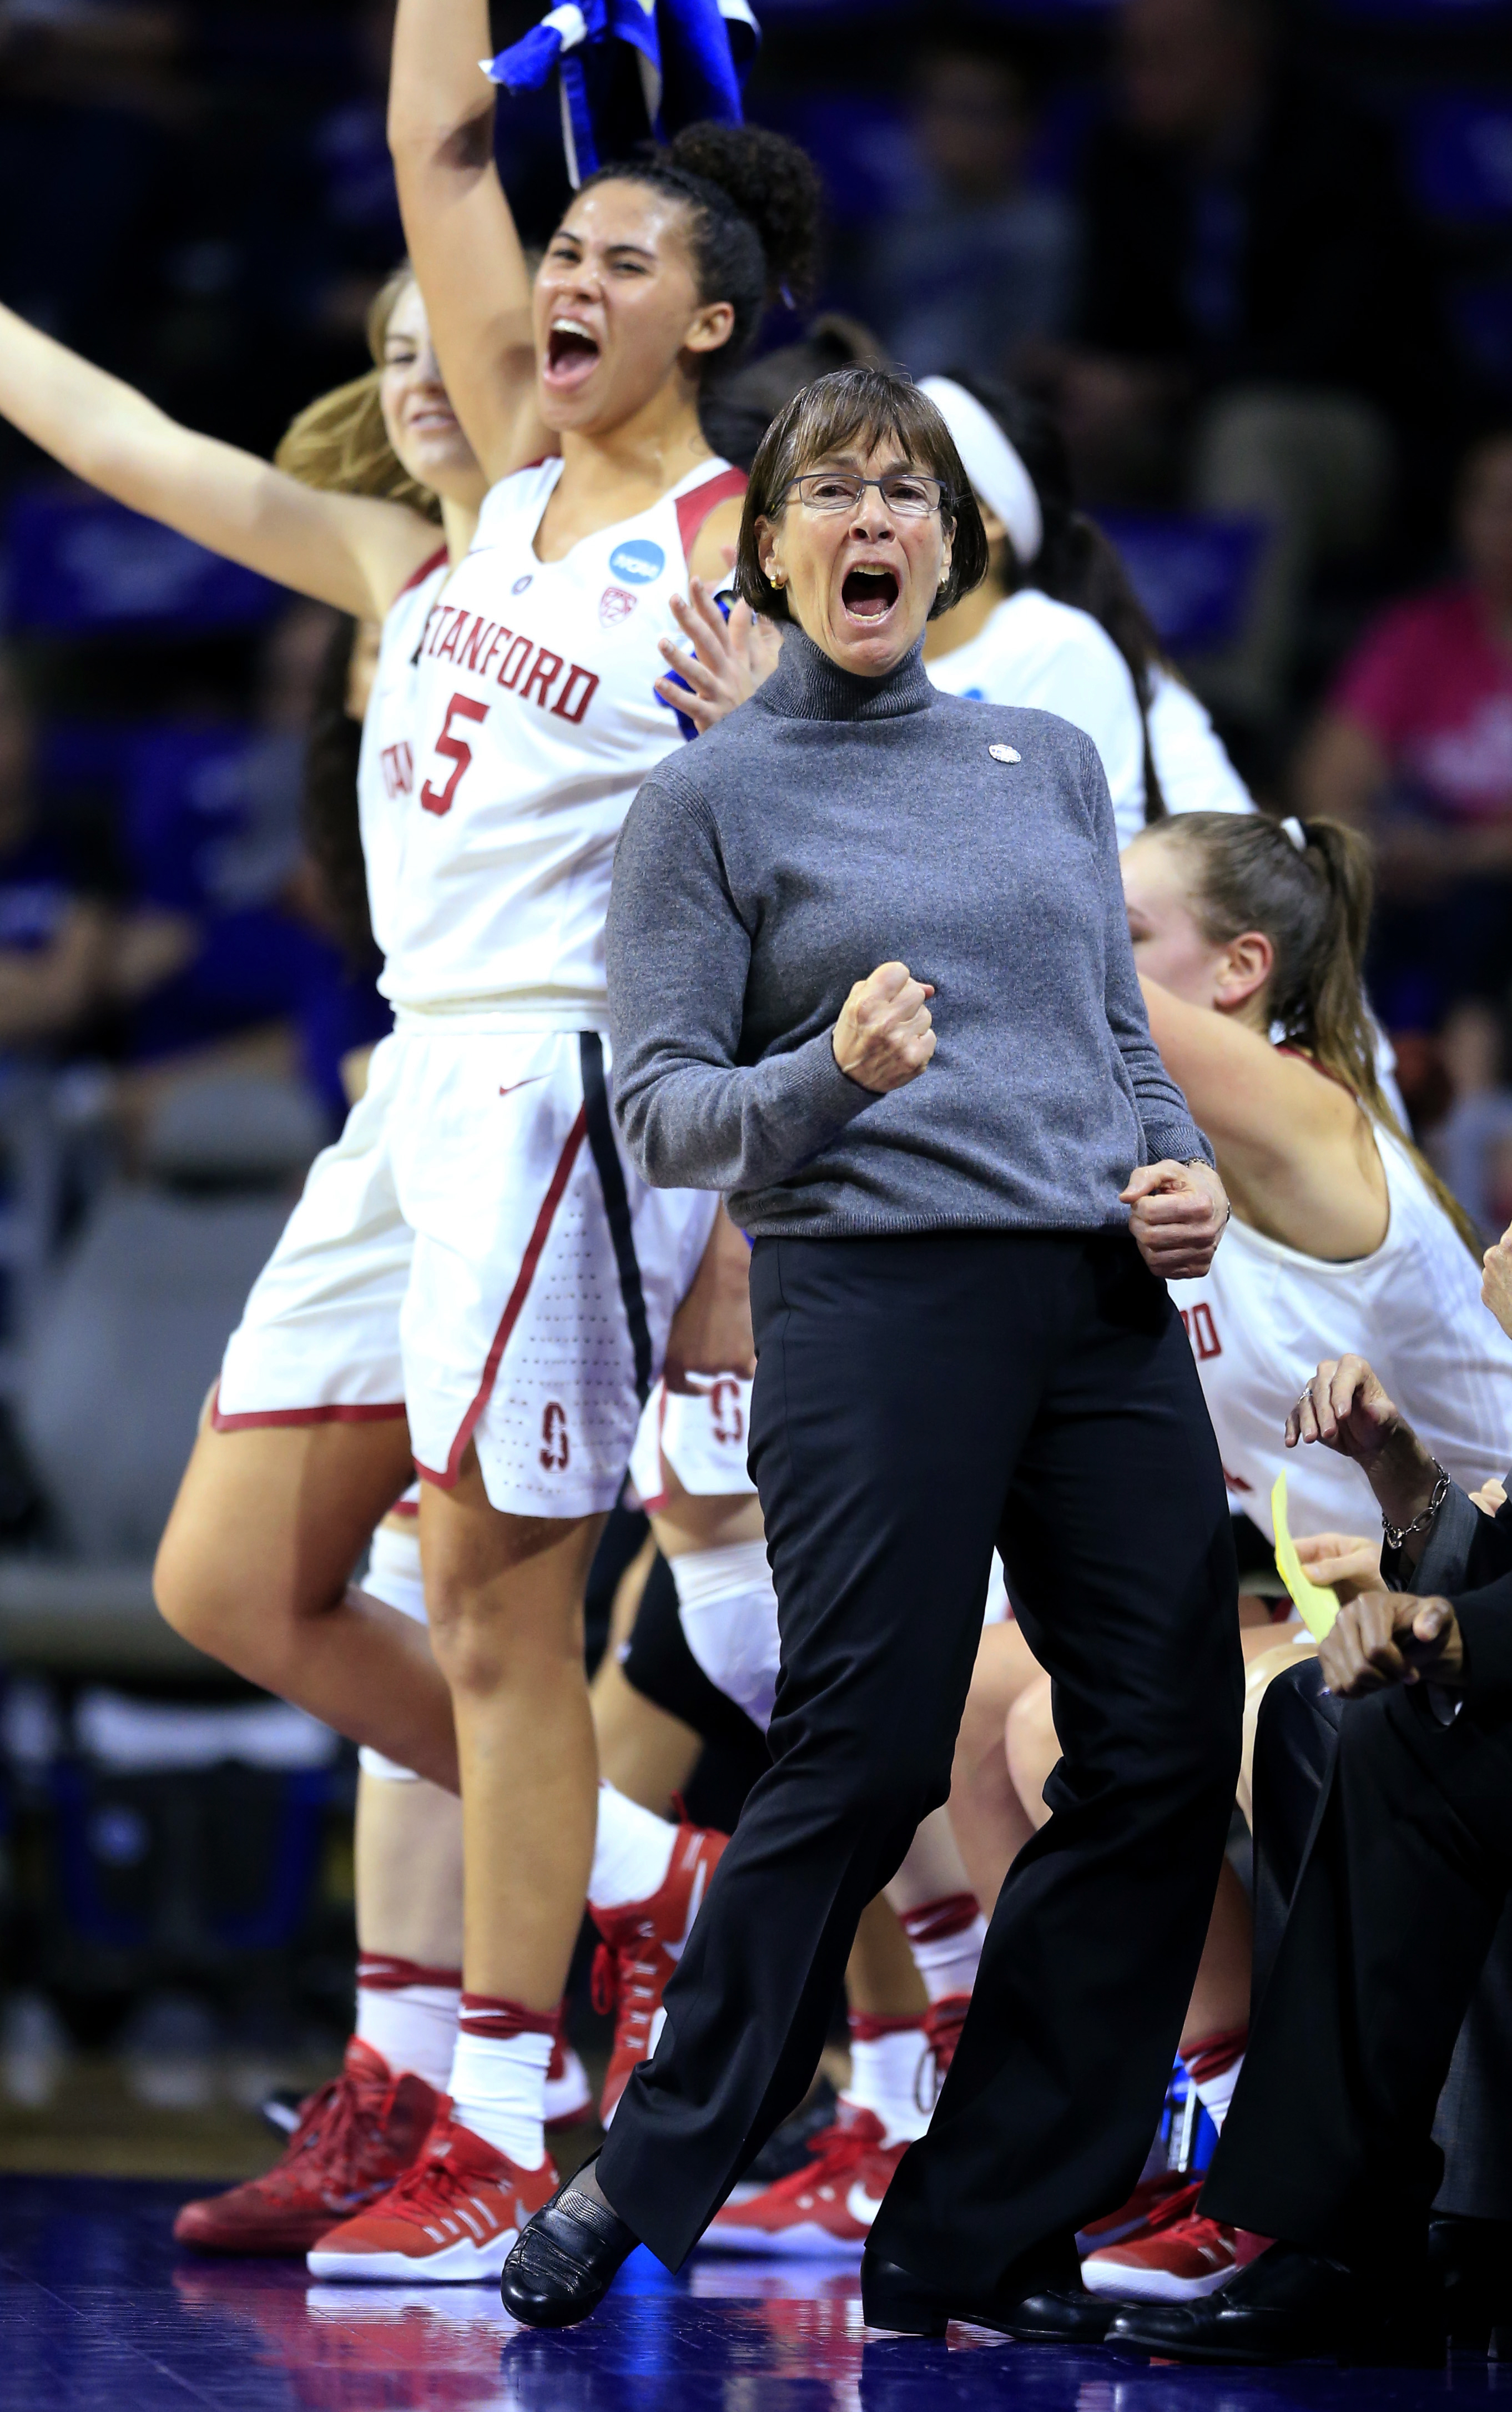 Stanford coach Tara VanDerveer celebrates a basket with her team during the first half of a second-round game against Kansas State in the NCAA women's college basketball tournament in Manhattan, Kan., Monday, March 20, 2017. (AP Photo/Orlin Wagner)